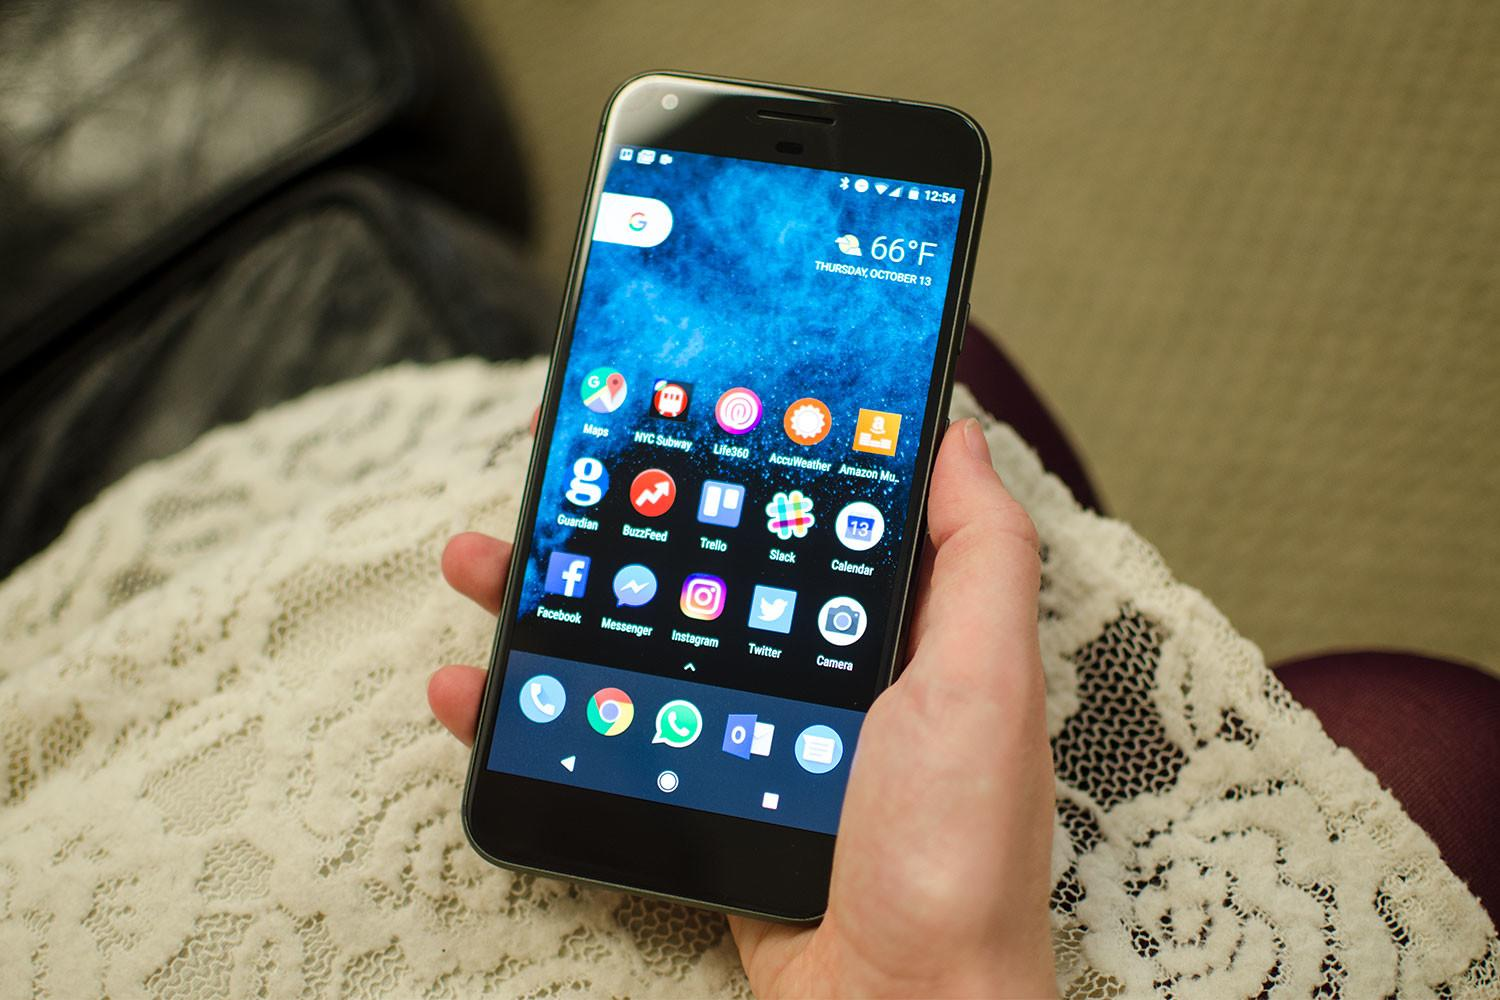 Flying off the shelves: Demand for the Pixel and Pixel XL now exceeds supply